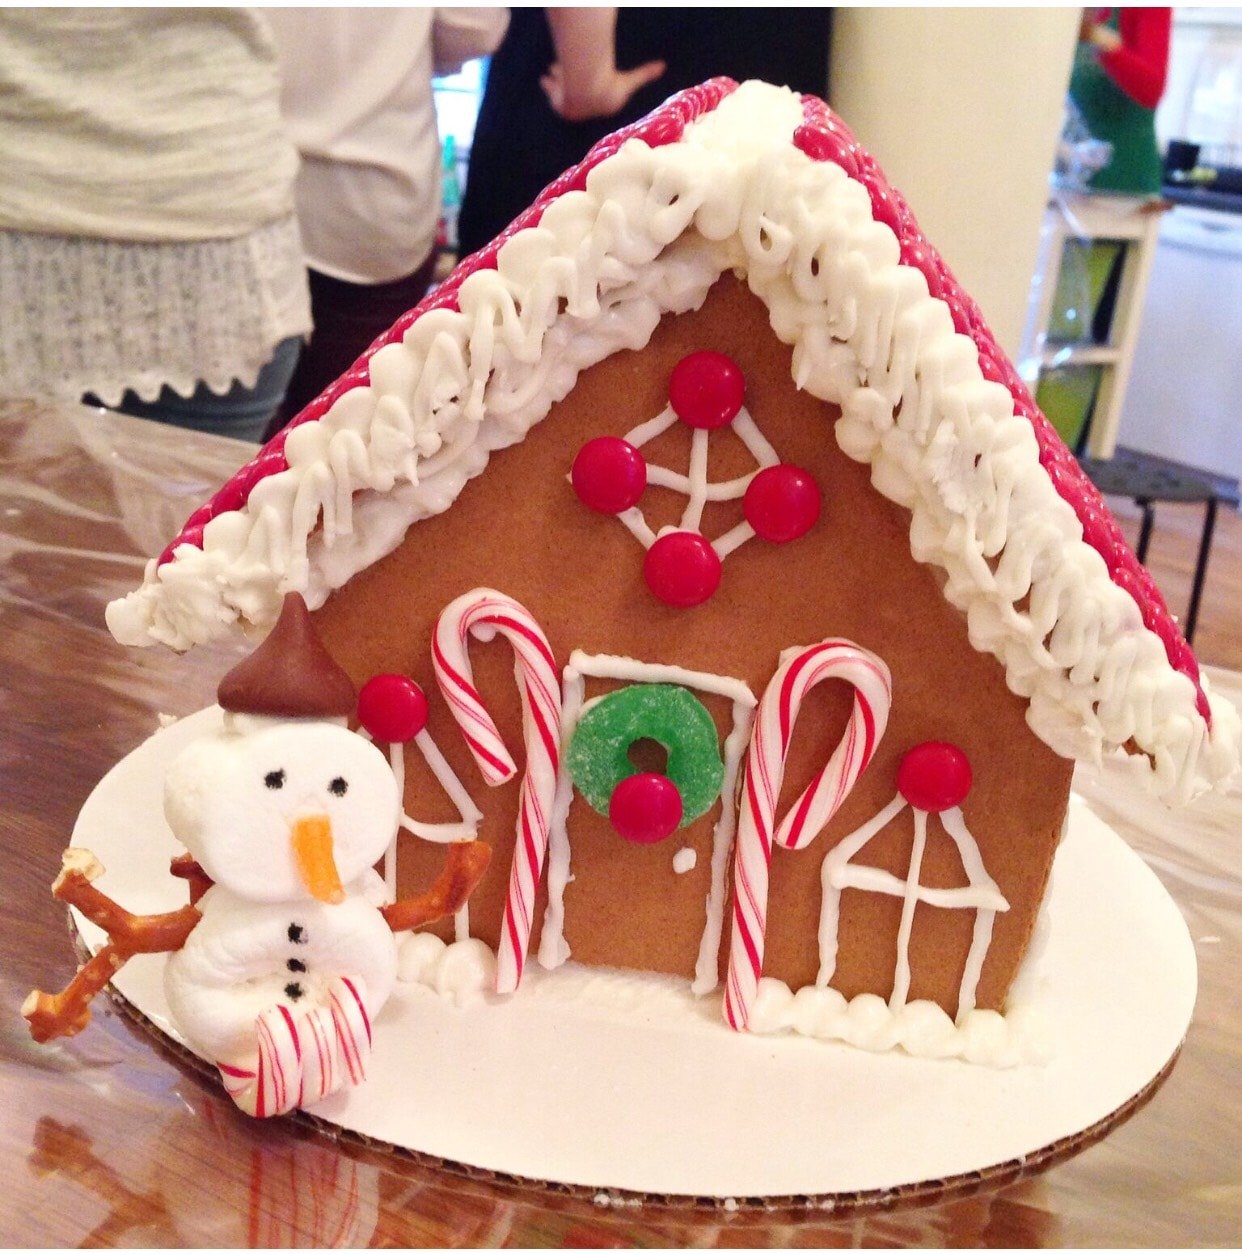 Gingerbread House Courtesy of Taste Buds Kitchen